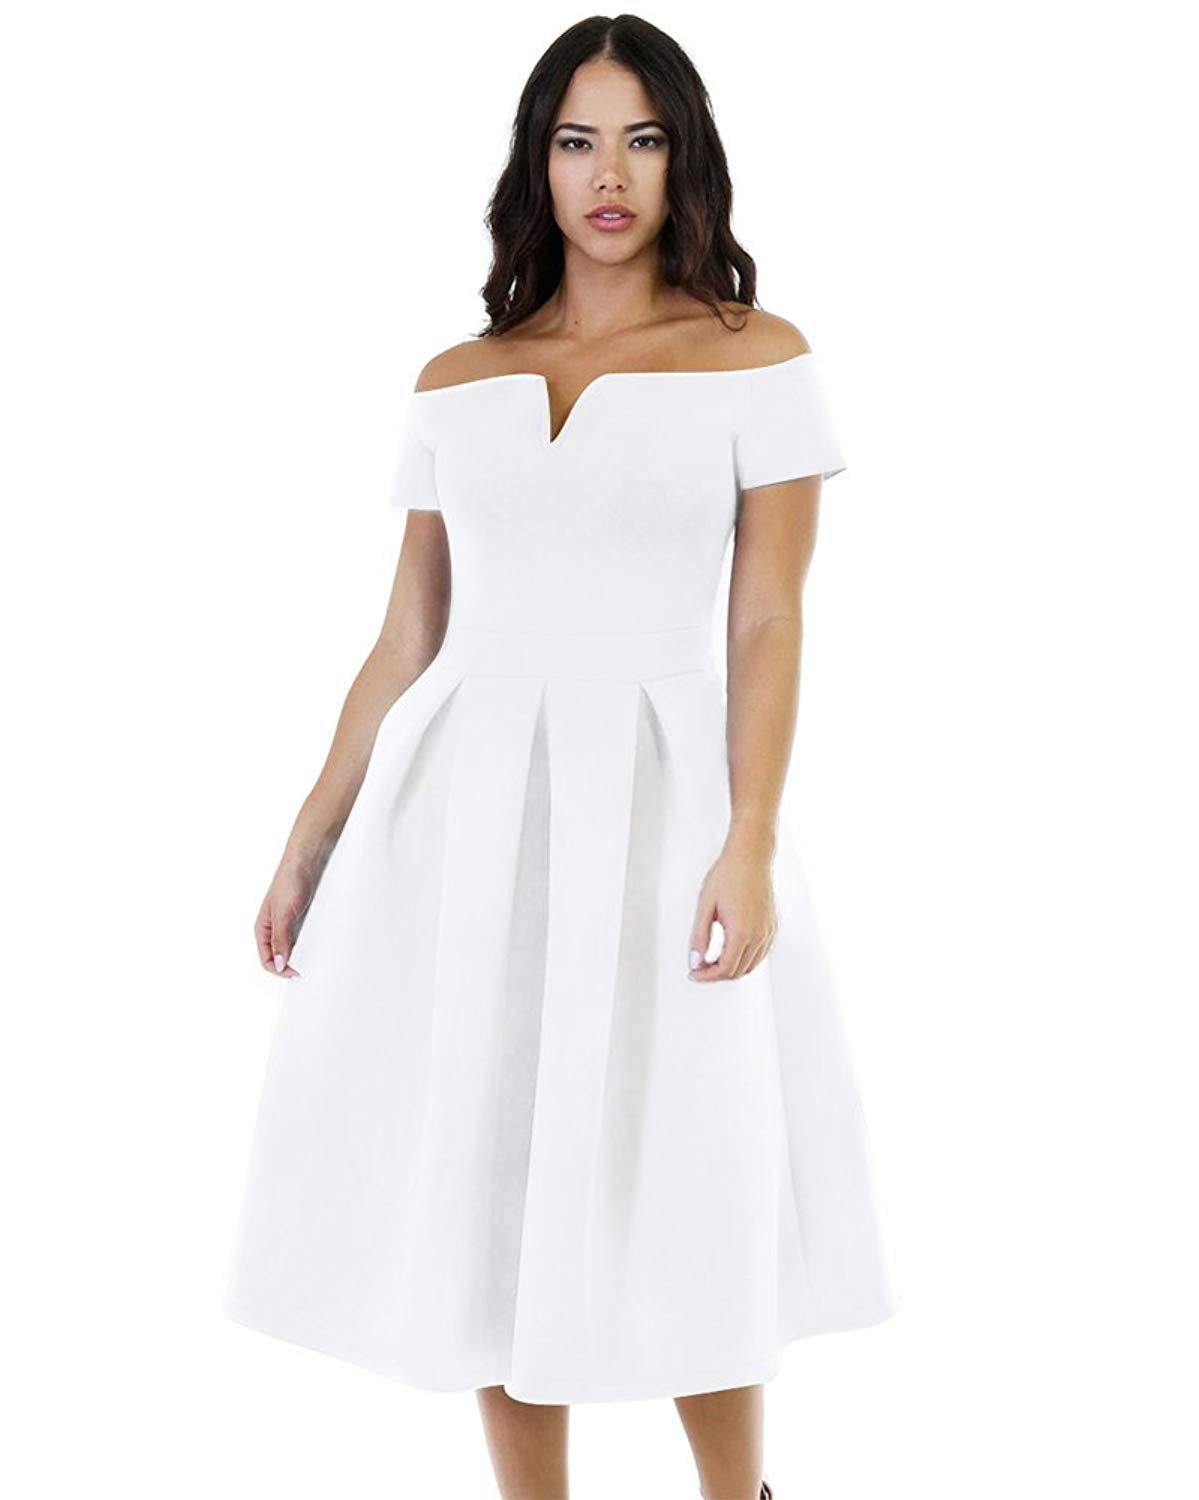 f895aecd2a Get Quotations · Lalagen Women s Vintage 1950s Party Cocktail Wedding Swing  Midi Dress